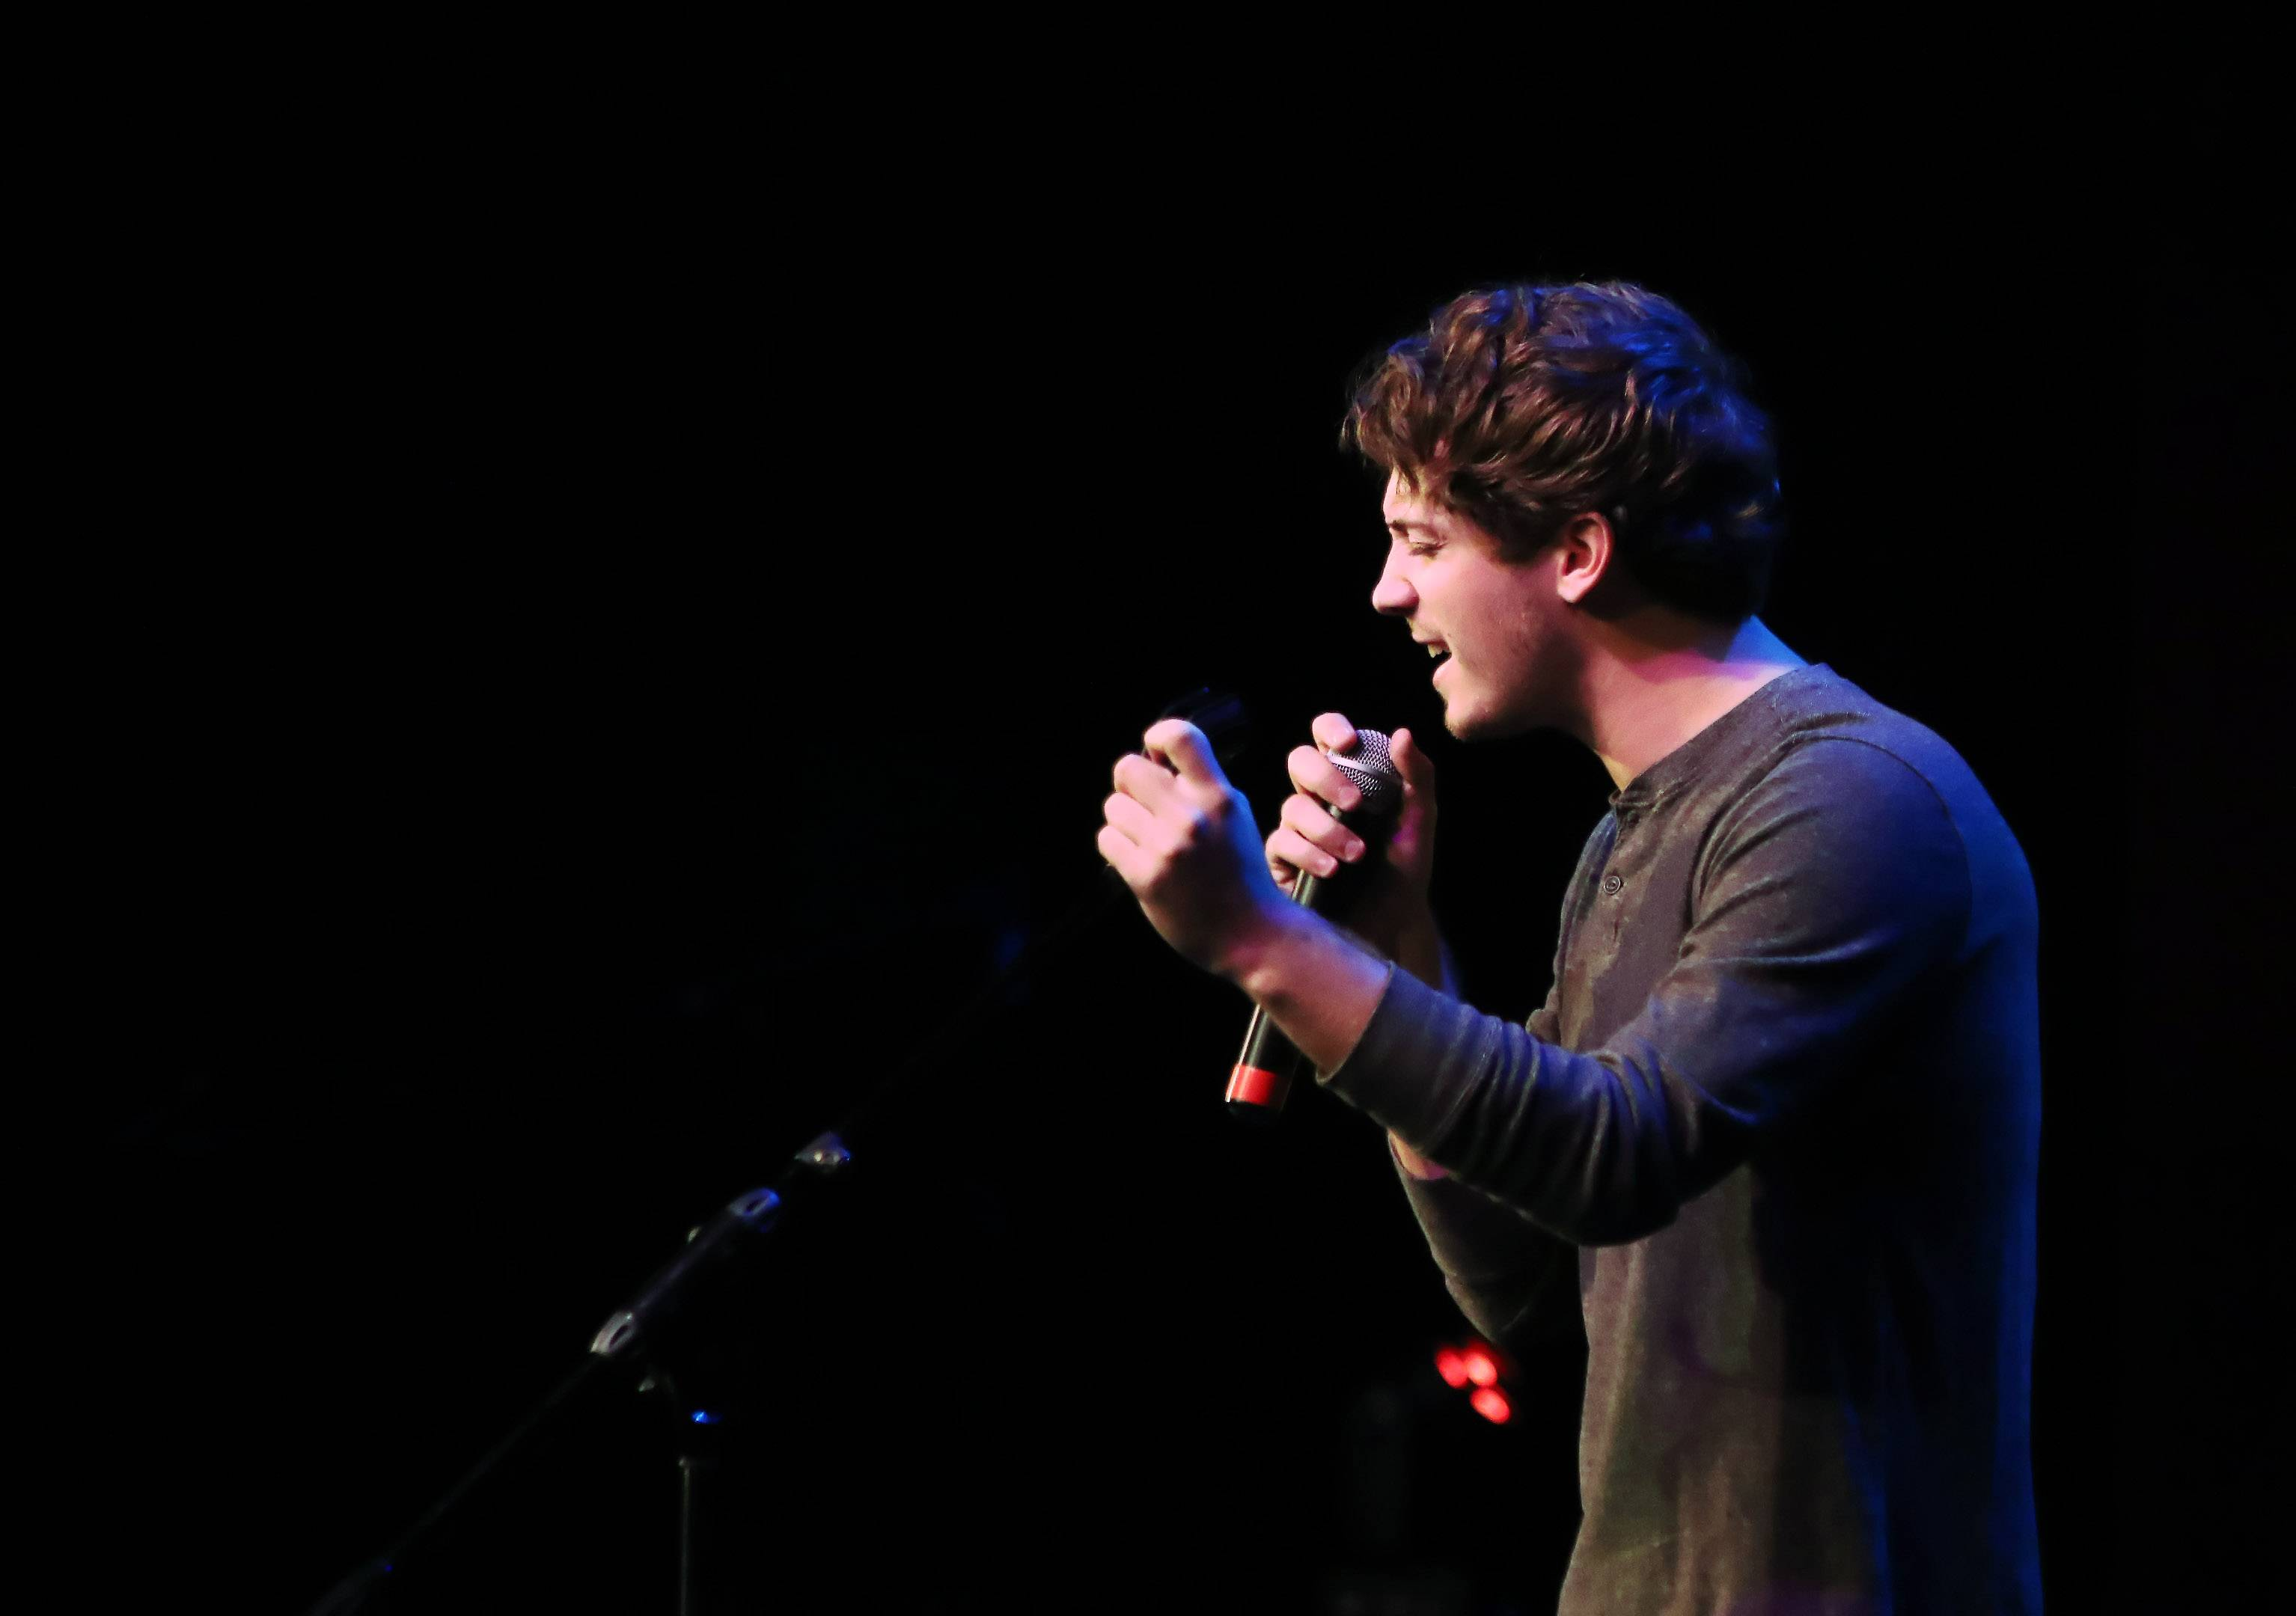 Garrett Ryan of West Dundee sings during the Suburban Chicago's Got Talent competition at the Prairie Center for the Arts in Schaumburg on Sunday night. The top 15 finalists performed as they competed for the grand prize to be announced of Aug. 5.